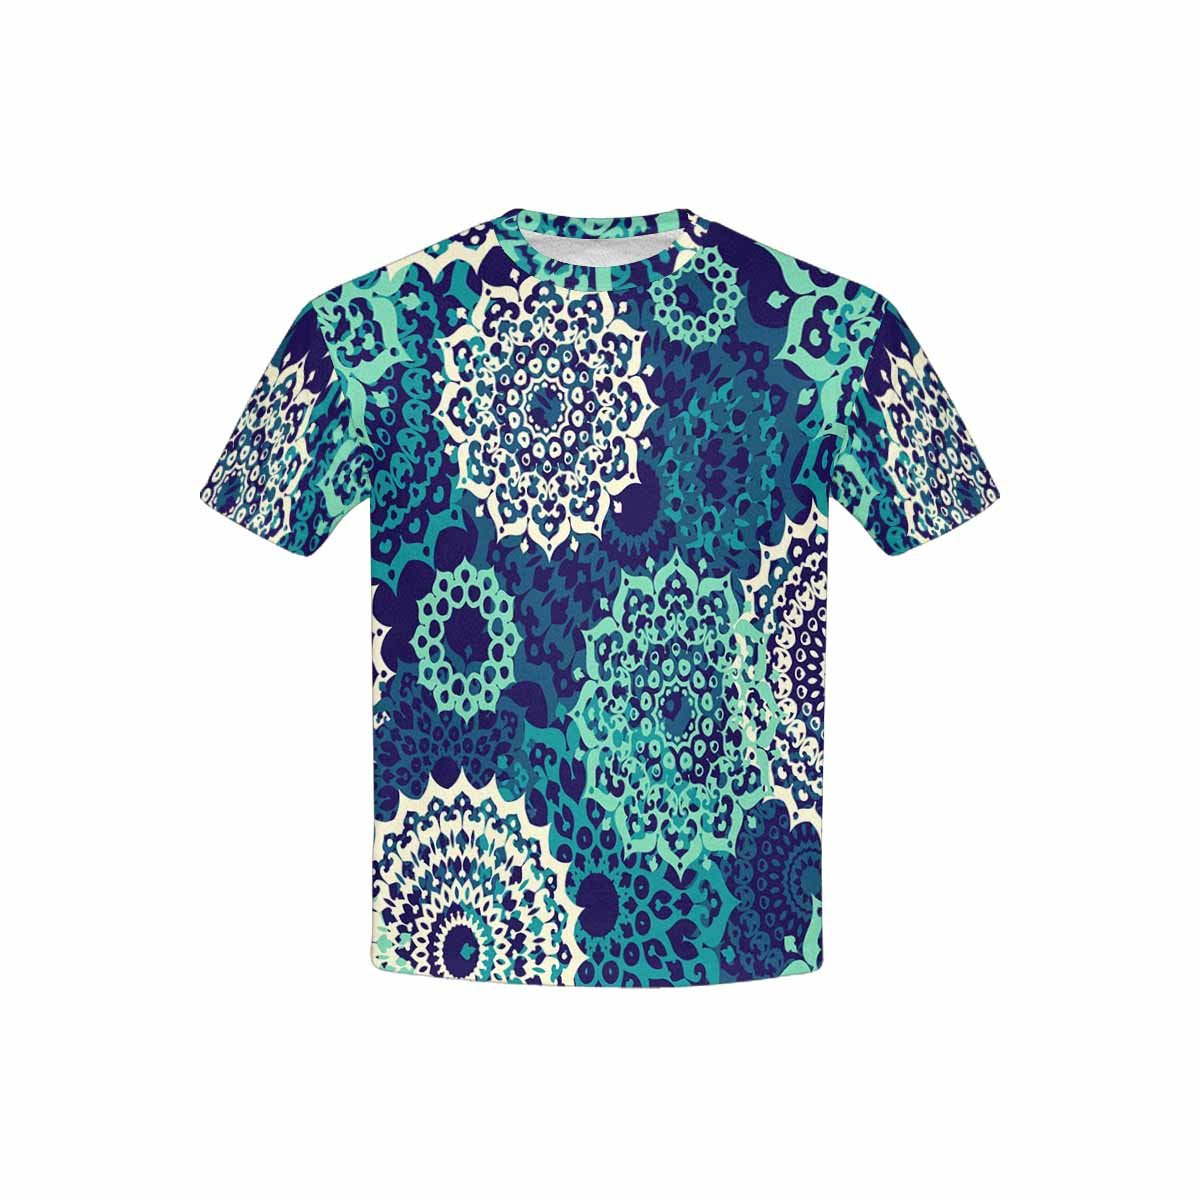 INTERESTPRINT Multicolor Oriental Mandalas Childs T-Shirt XS-XL